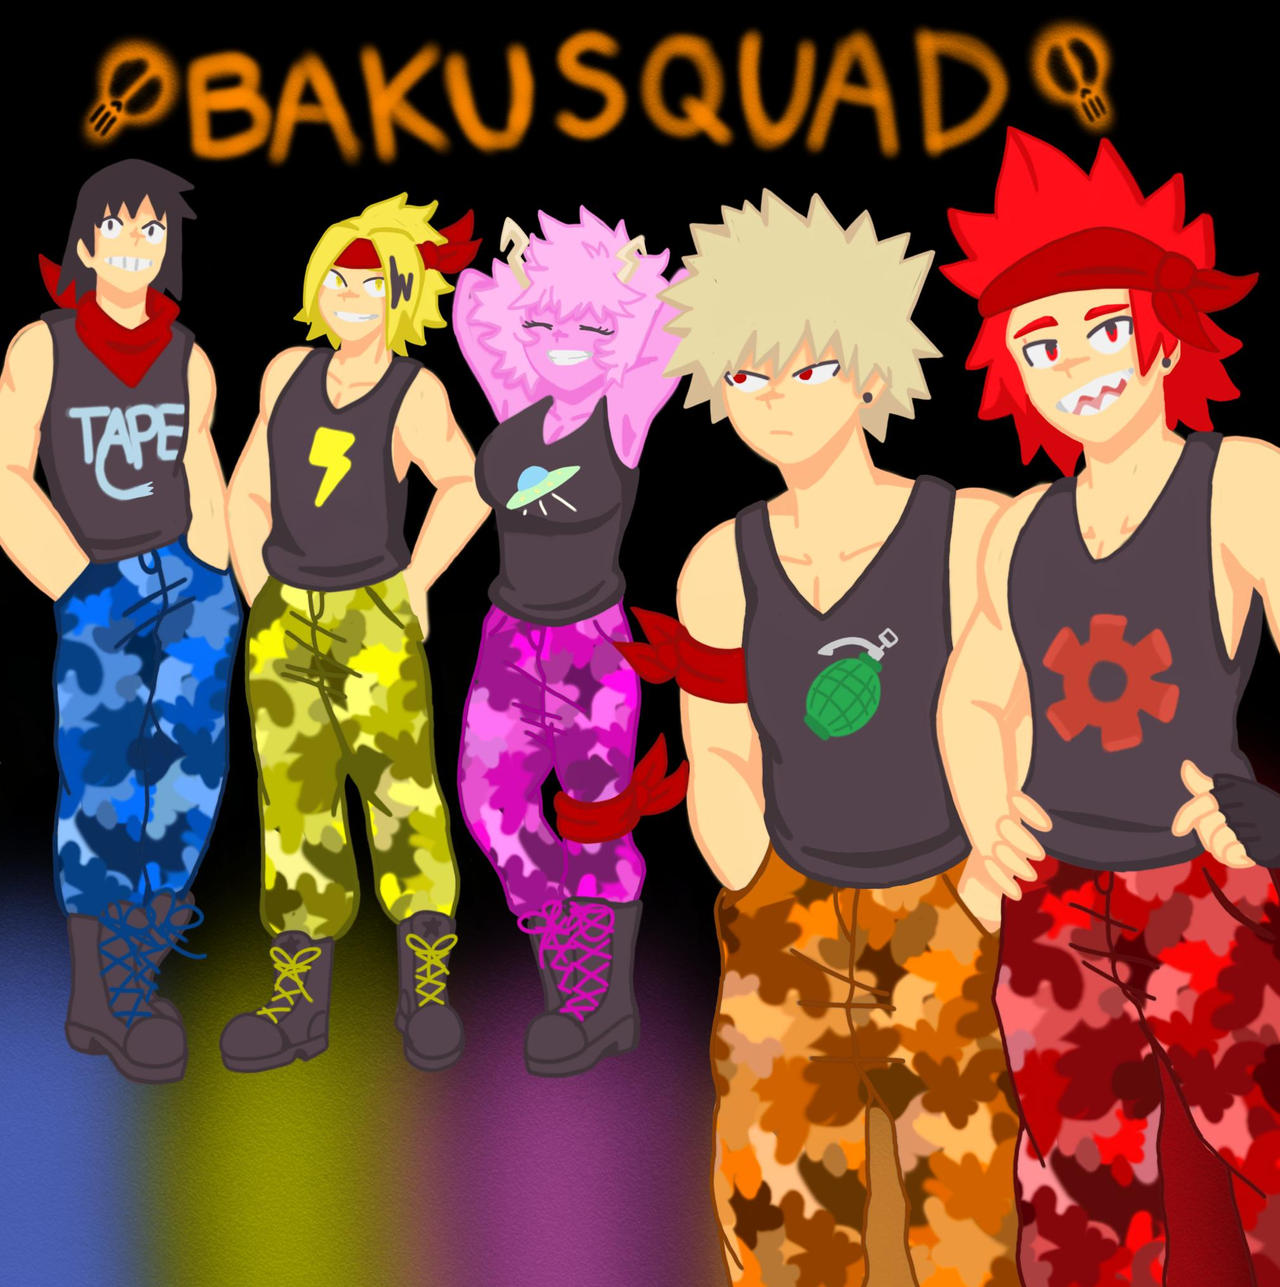 Bakusquad By Kirishime02262004 On Deviantart The bakusquad and a few other students are in the common room relaxing and talking before they have to go to bed for the night. bakusquad by kirishime02262004 on